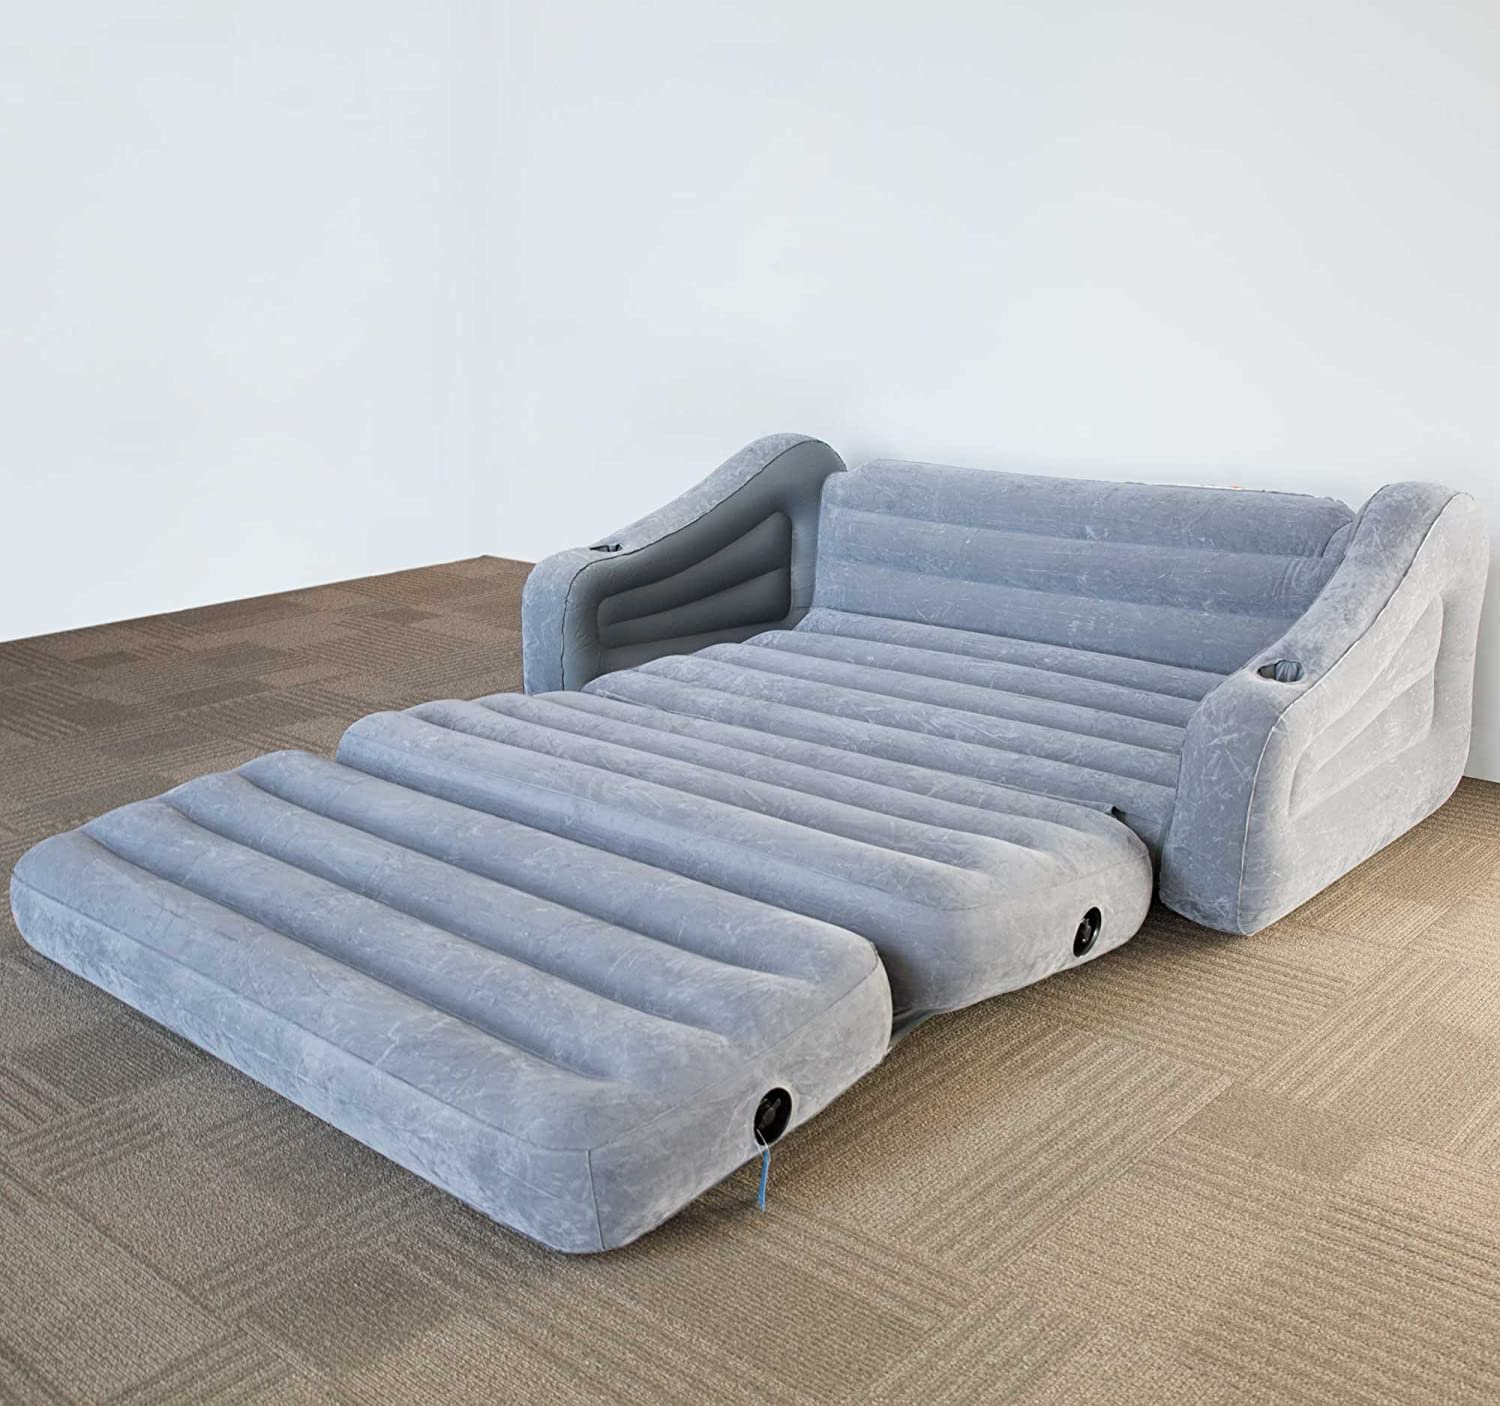 Intex Inflatable 2-In-1 Pull-Out Sofa and Queen Air Mattress Futon, Gray